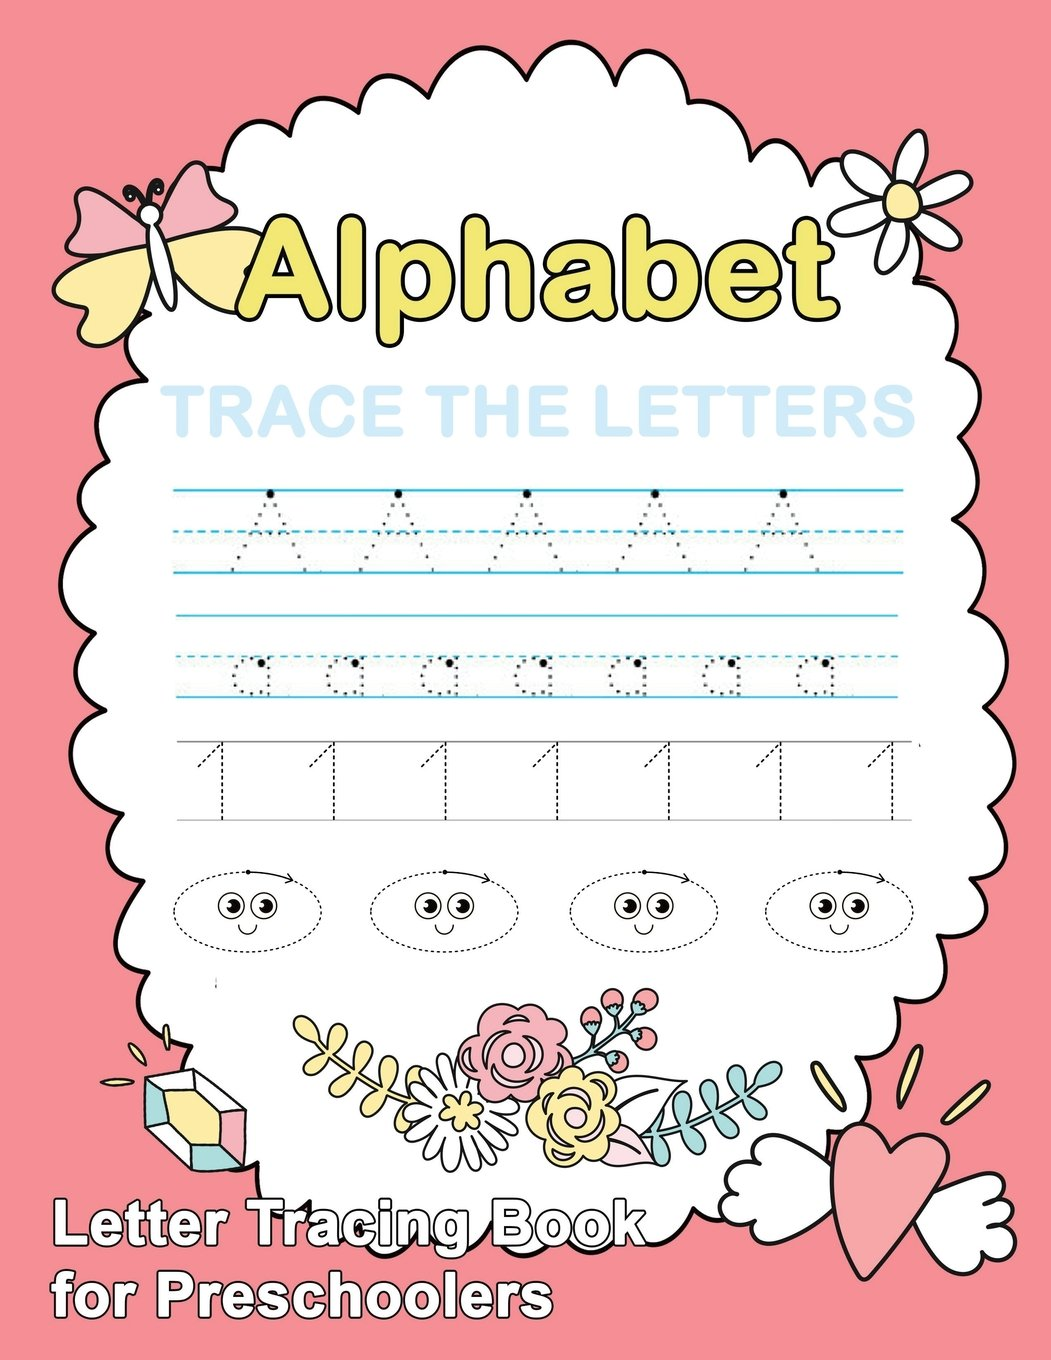 Letter Tracing Book for Preschoolers: Trace Letters Of The ...